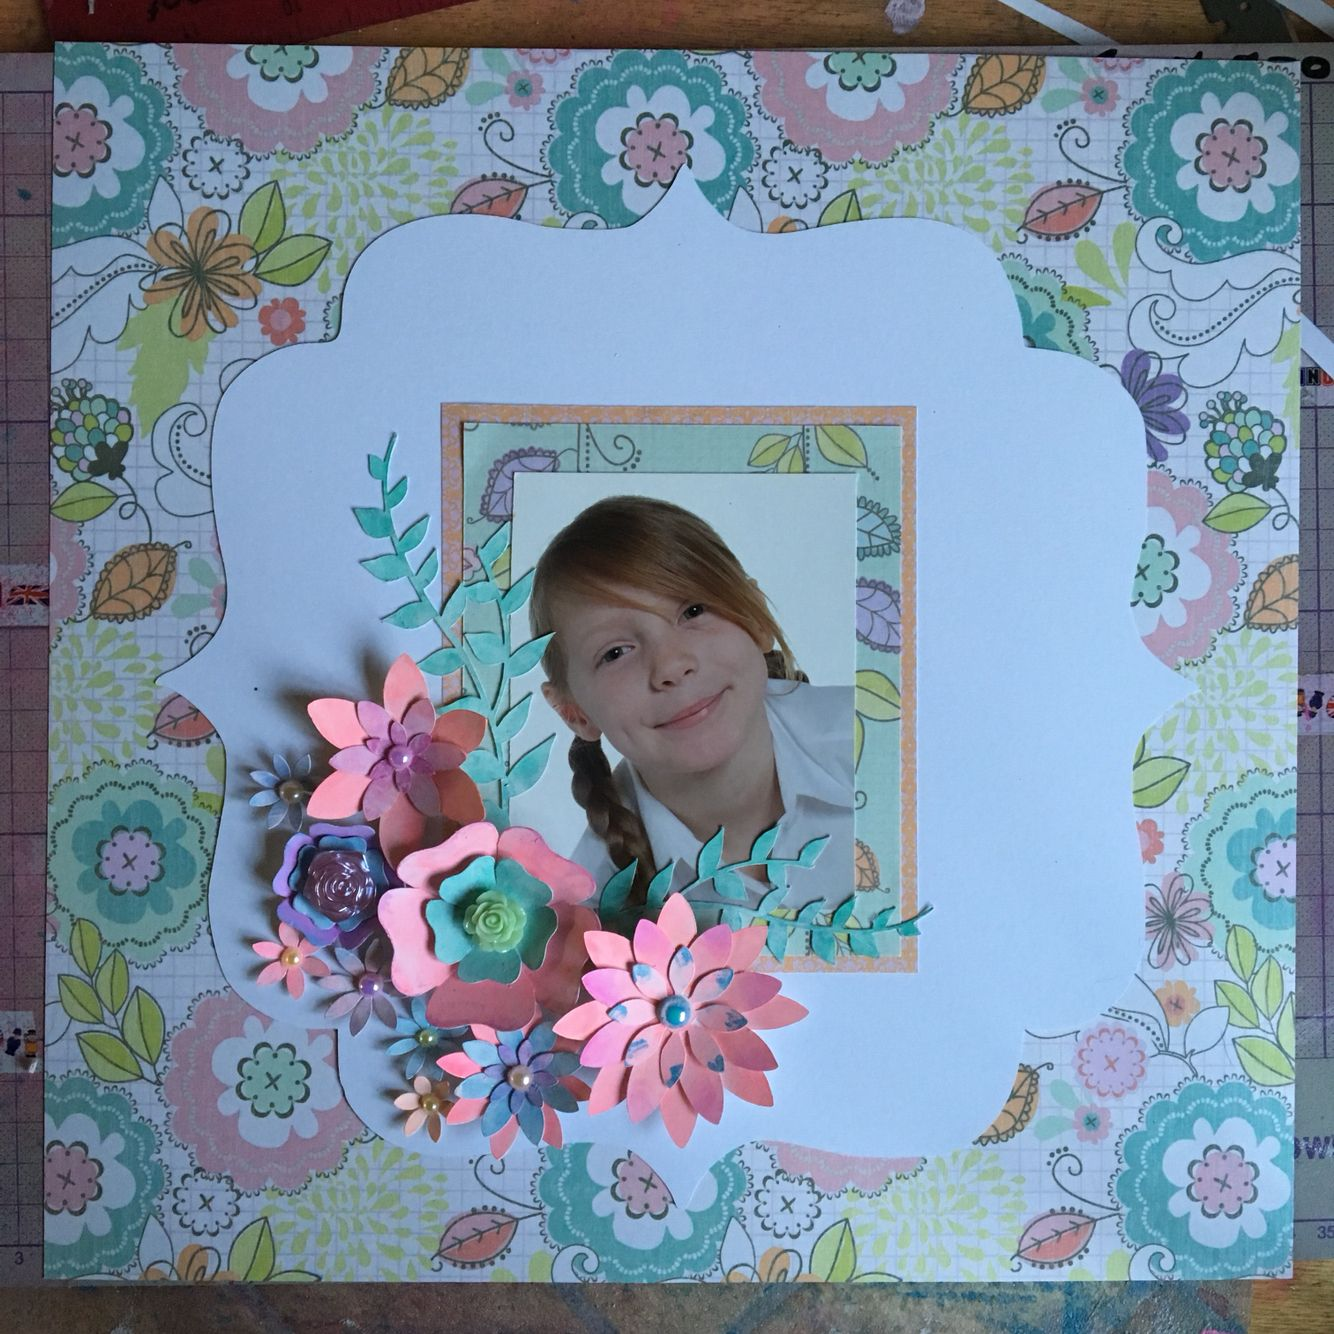 Scrapbook page made with grace Taylor 12x12 paper pack